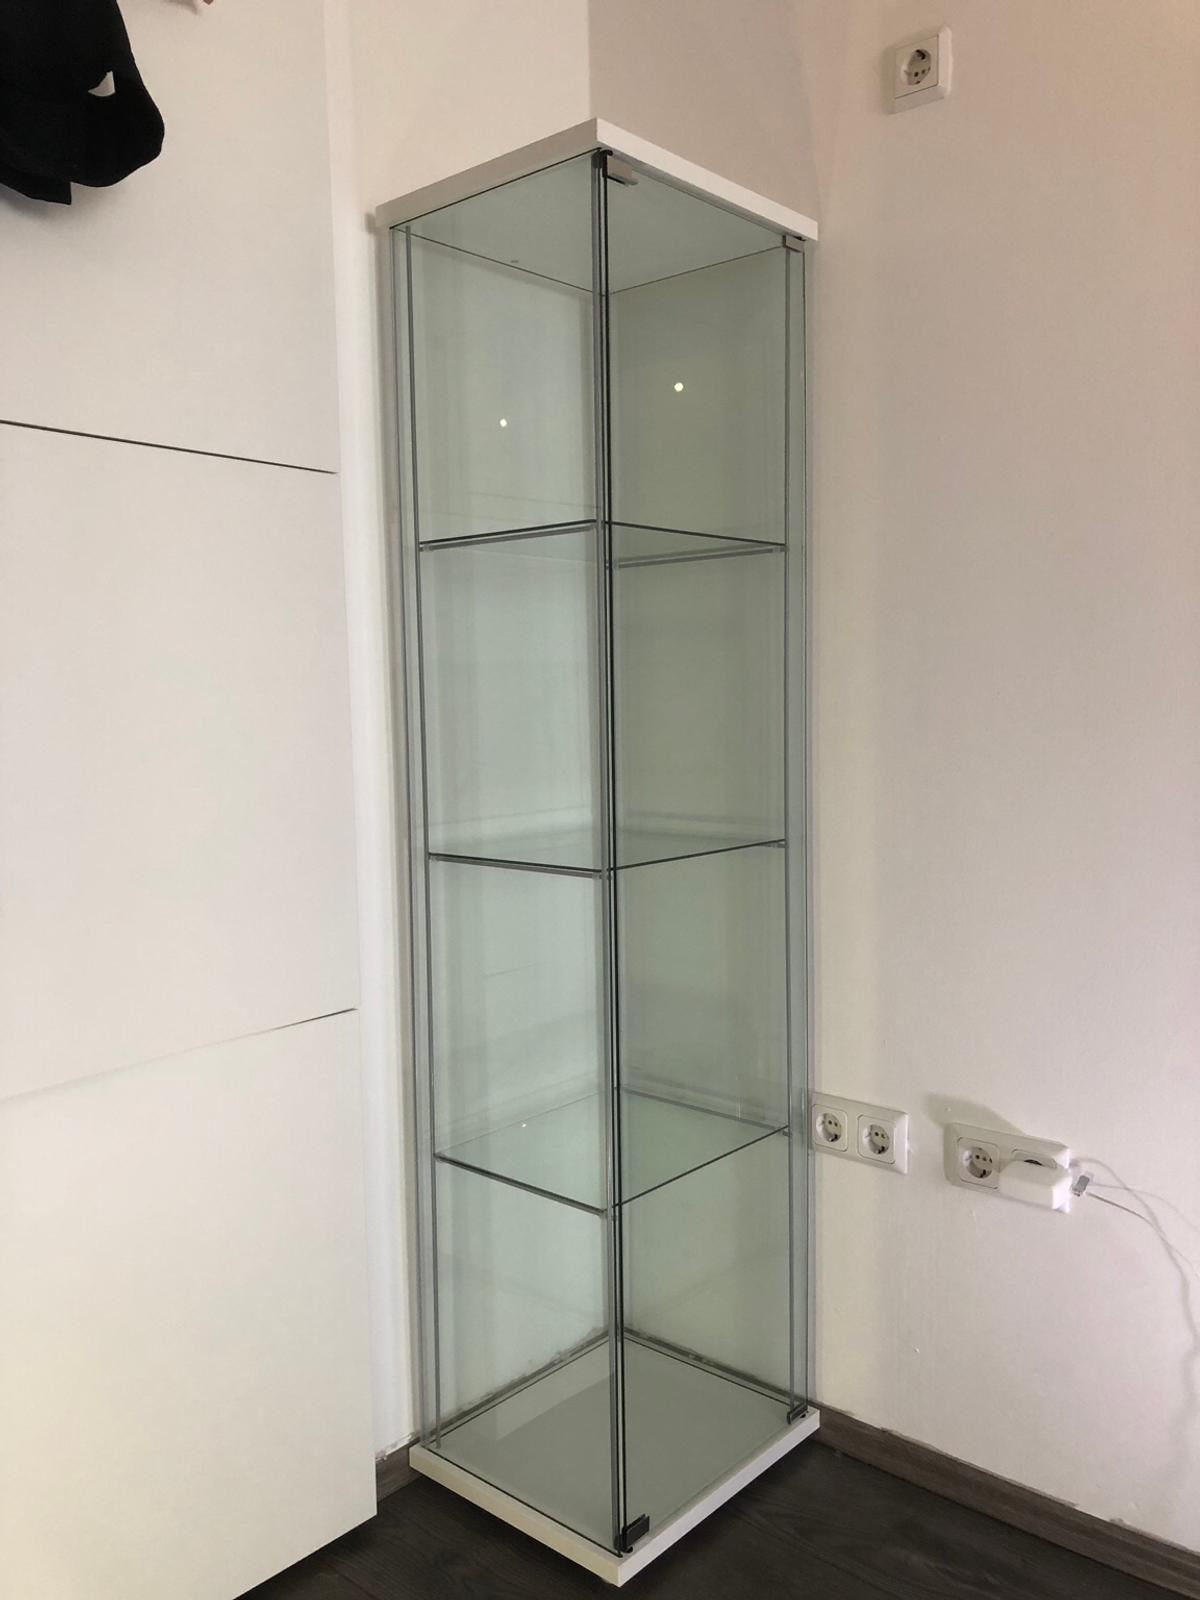 Ikea Vitrine Detolf Weiß In 51063 Cologne For 4000 For Sale Shpock